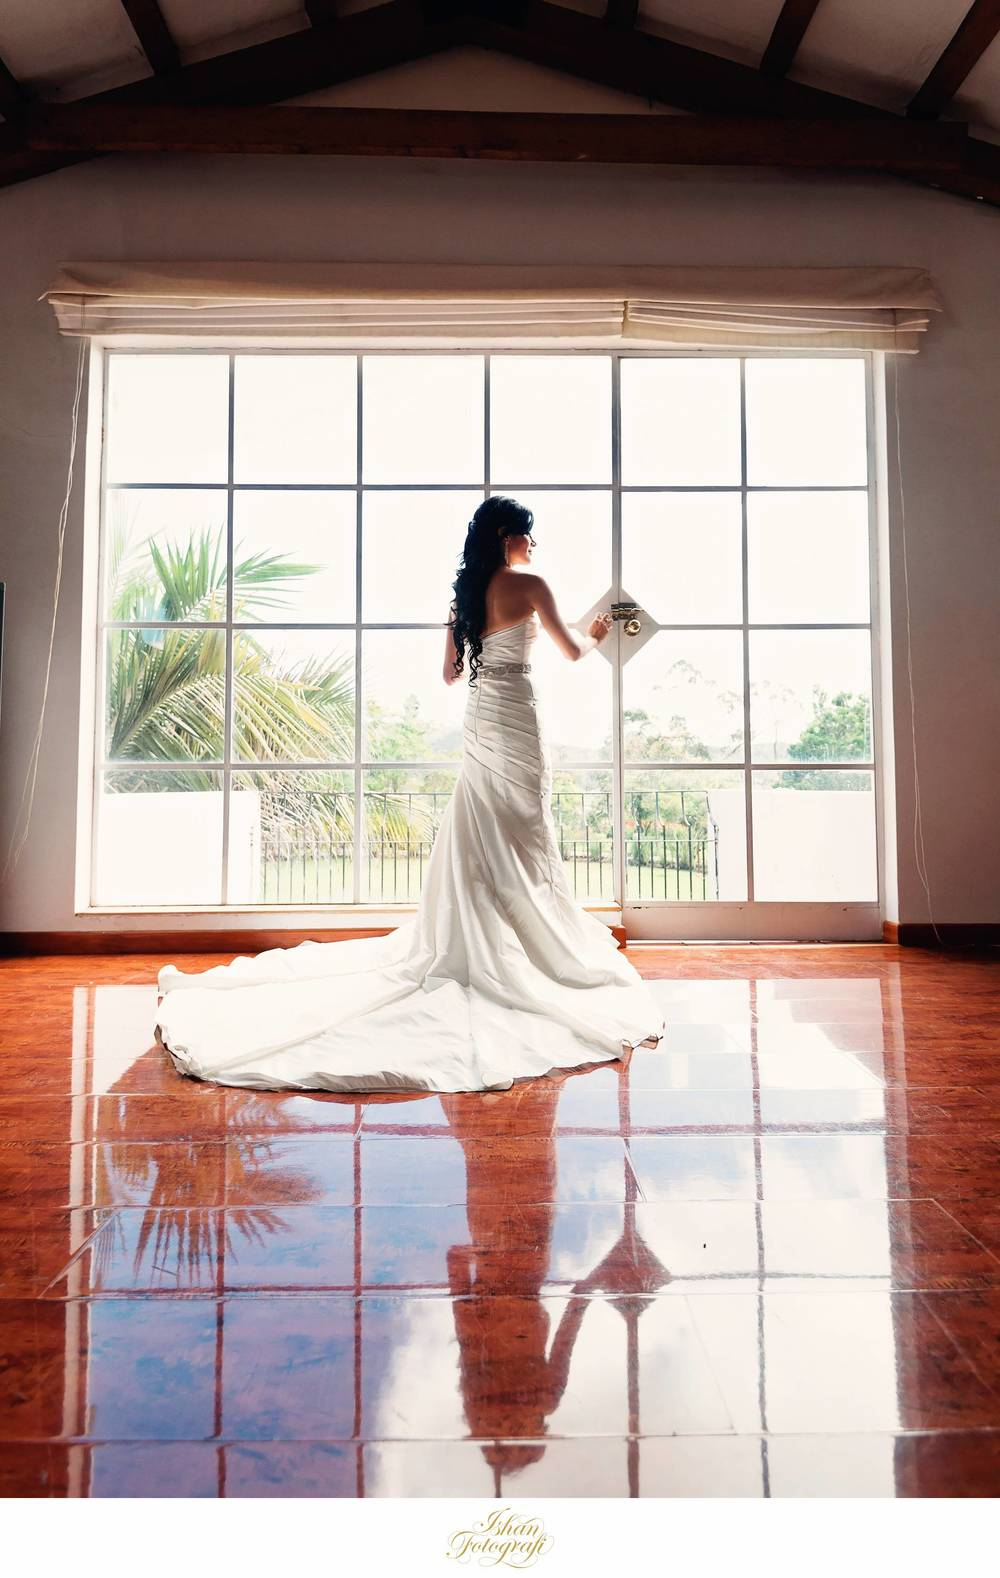 One of our favorite shots from the getting ready part of the day. Julie looked very gracious in her bridal gown.